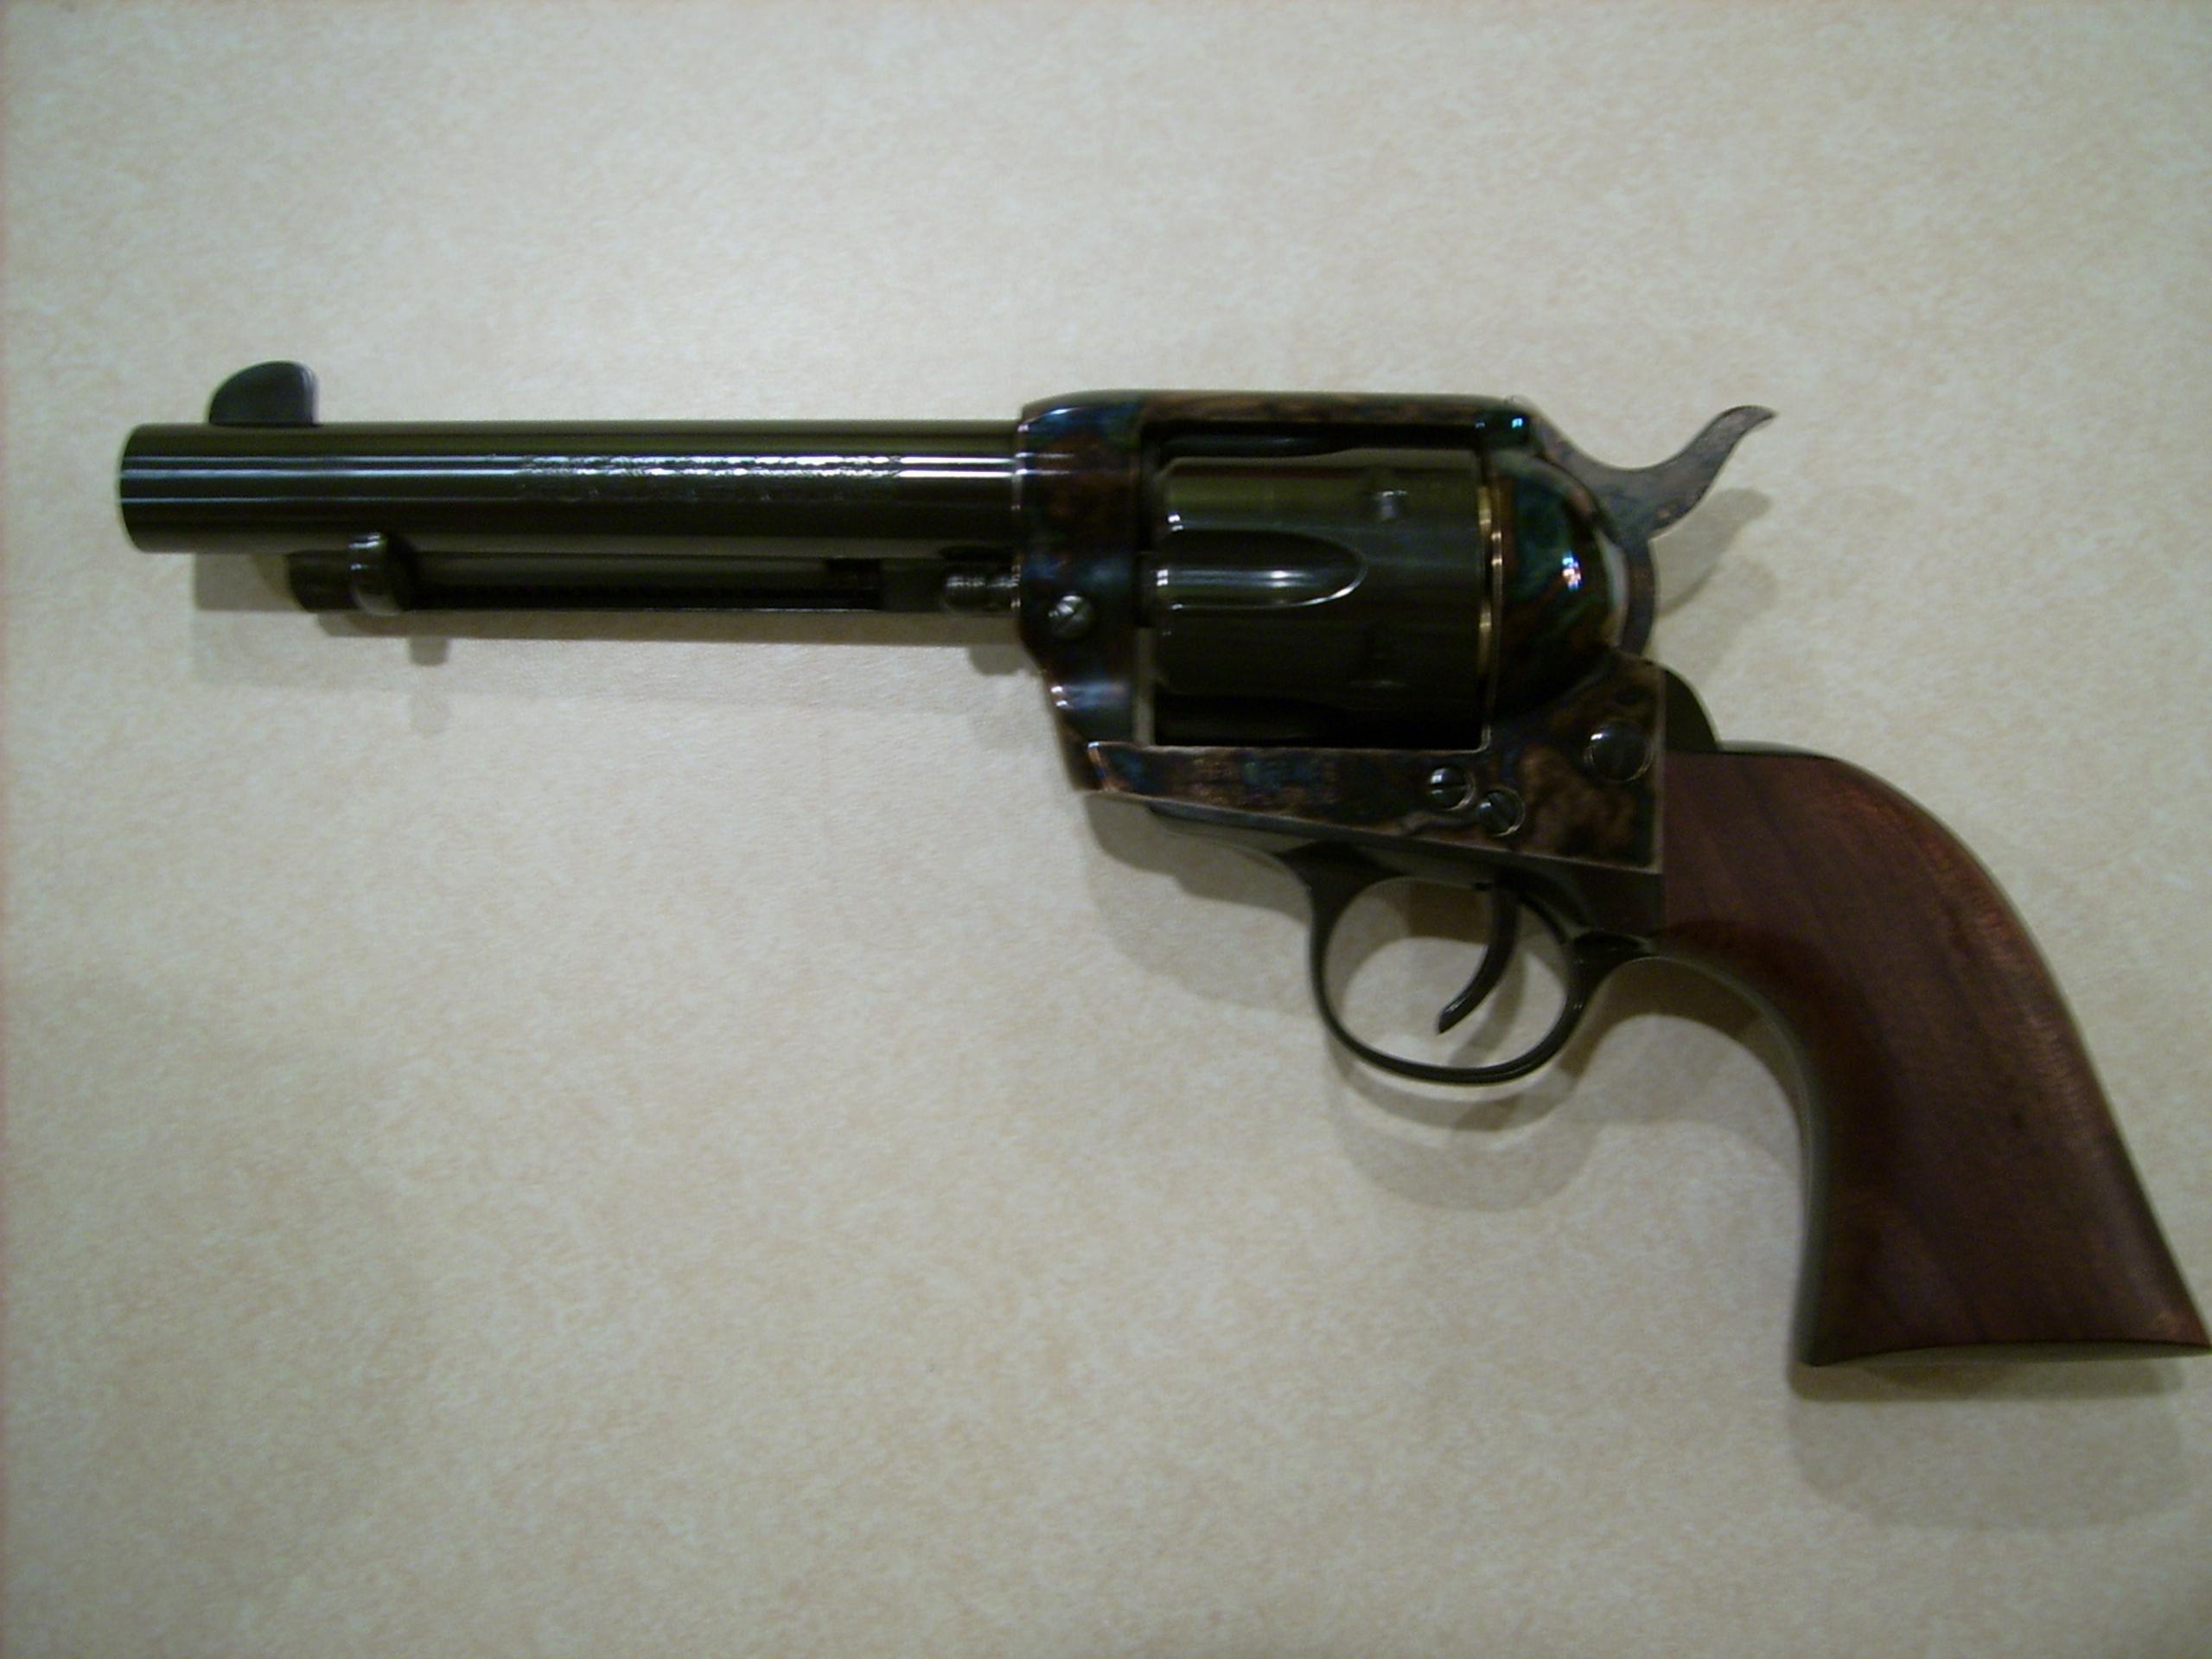 Single-action revolvers for concealed carry?-picture-072.jpg